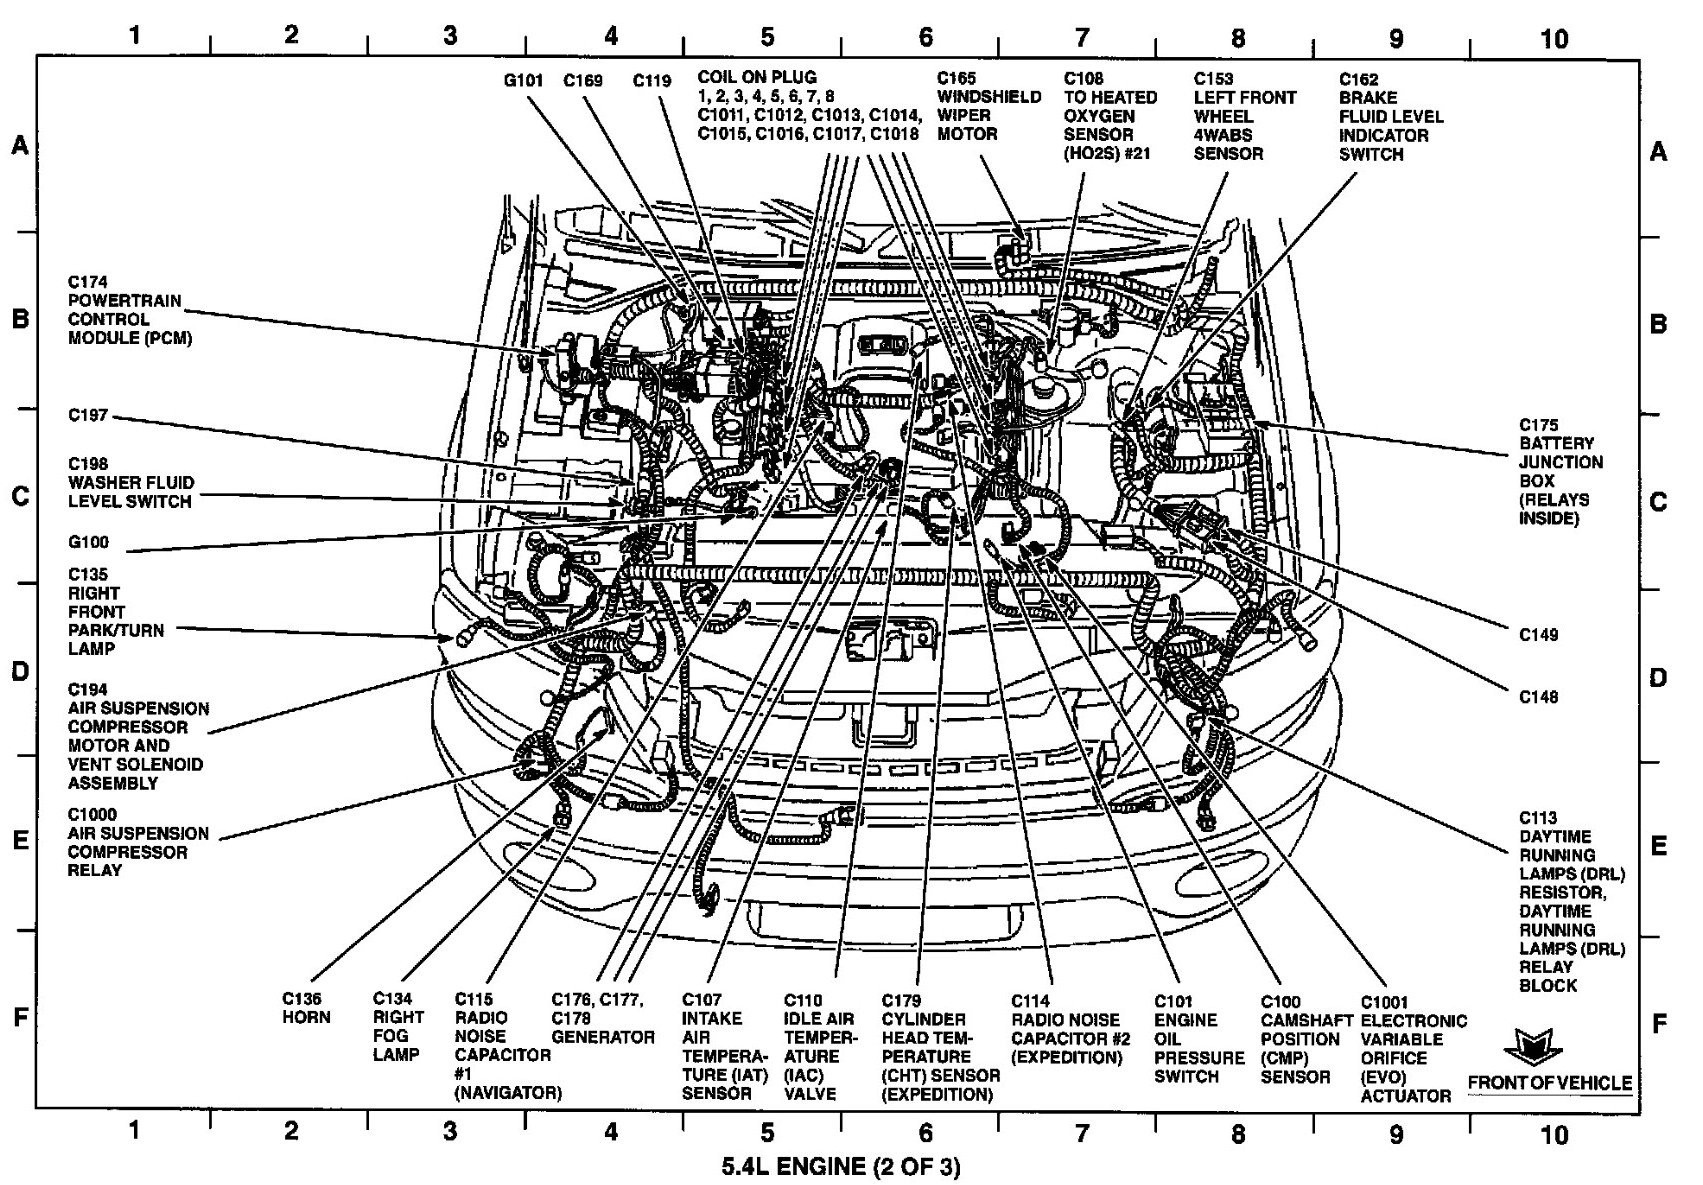 2004 ford explorer audio wiring diagram 1966 mustang under dash ranger engine